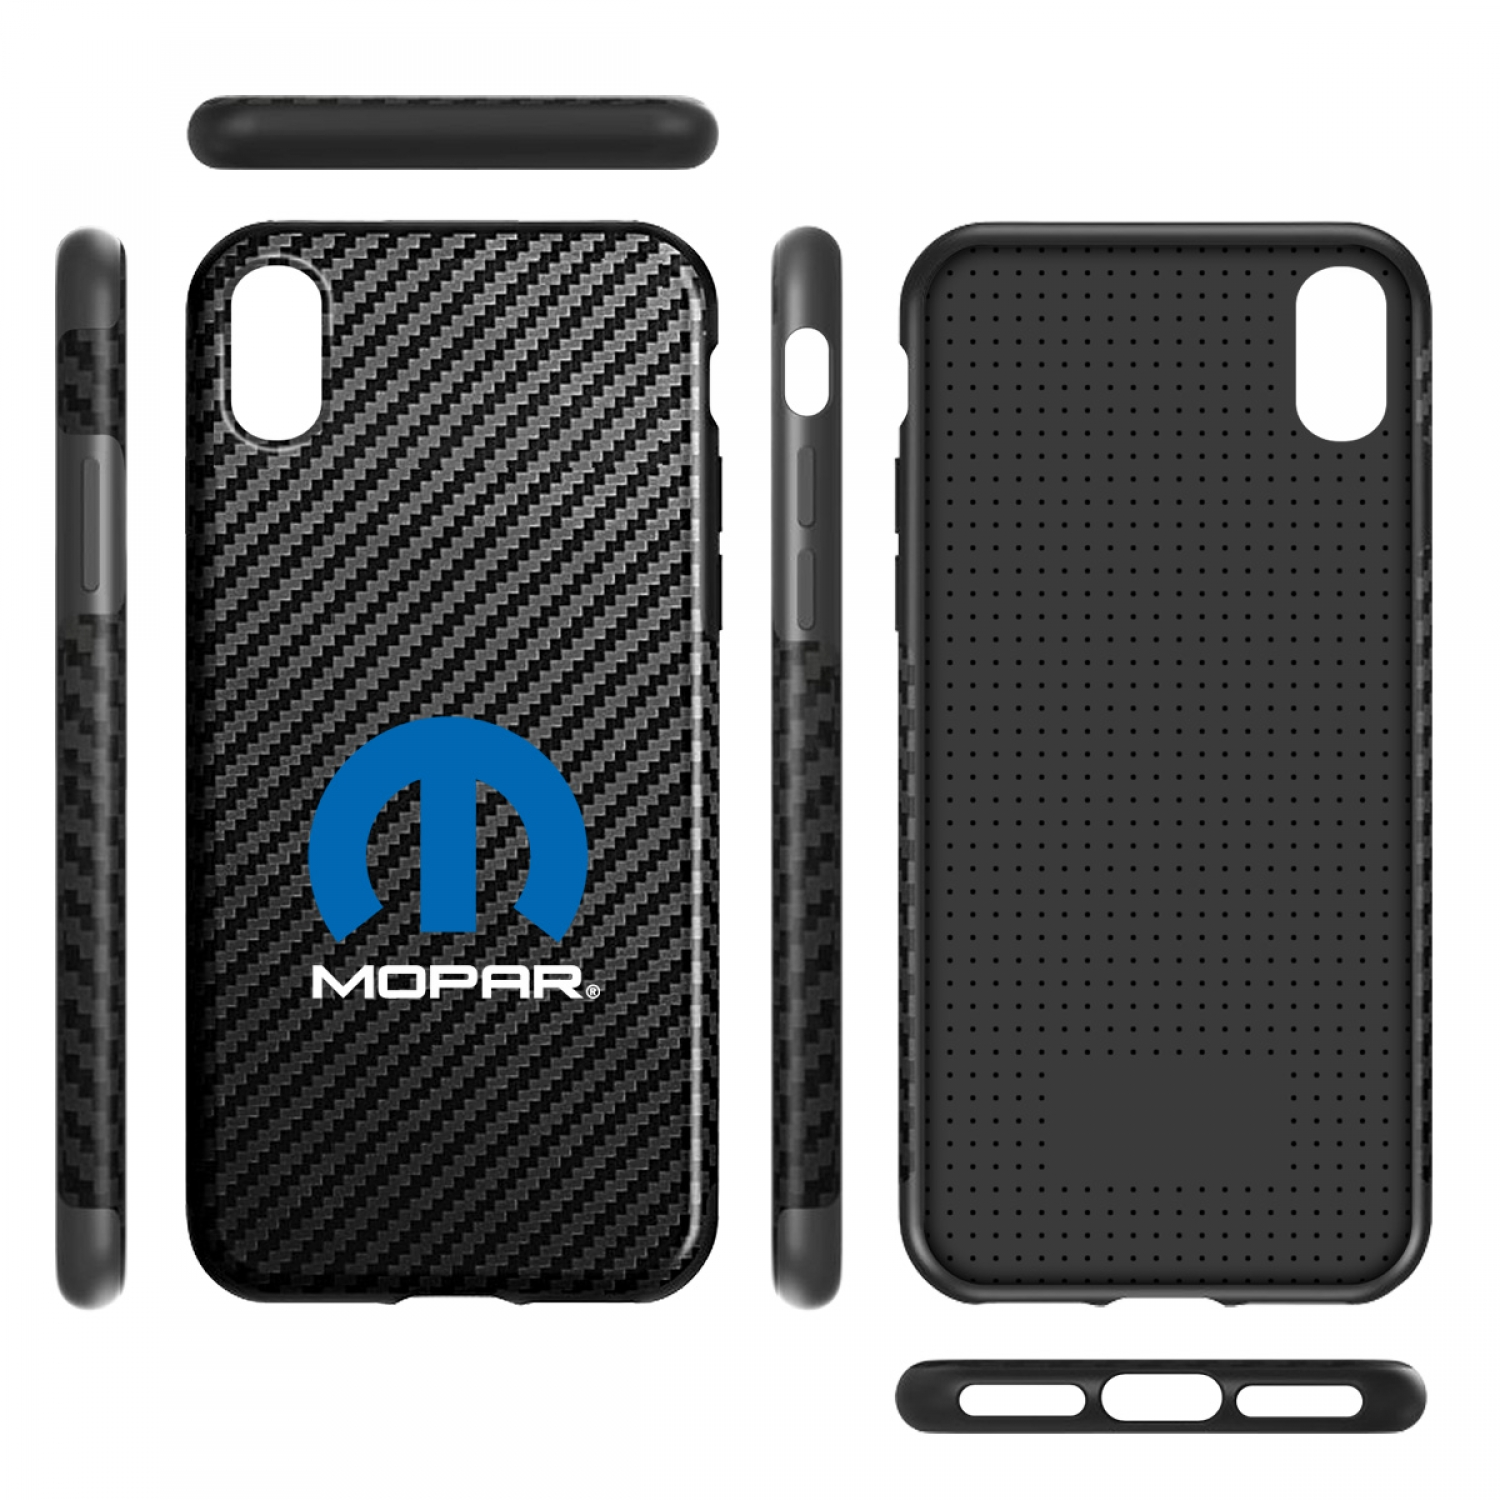 MOPAR Logo iPhone X Black Carbon Fiber Texture Leather TPU Shockproof Cell Phone Case